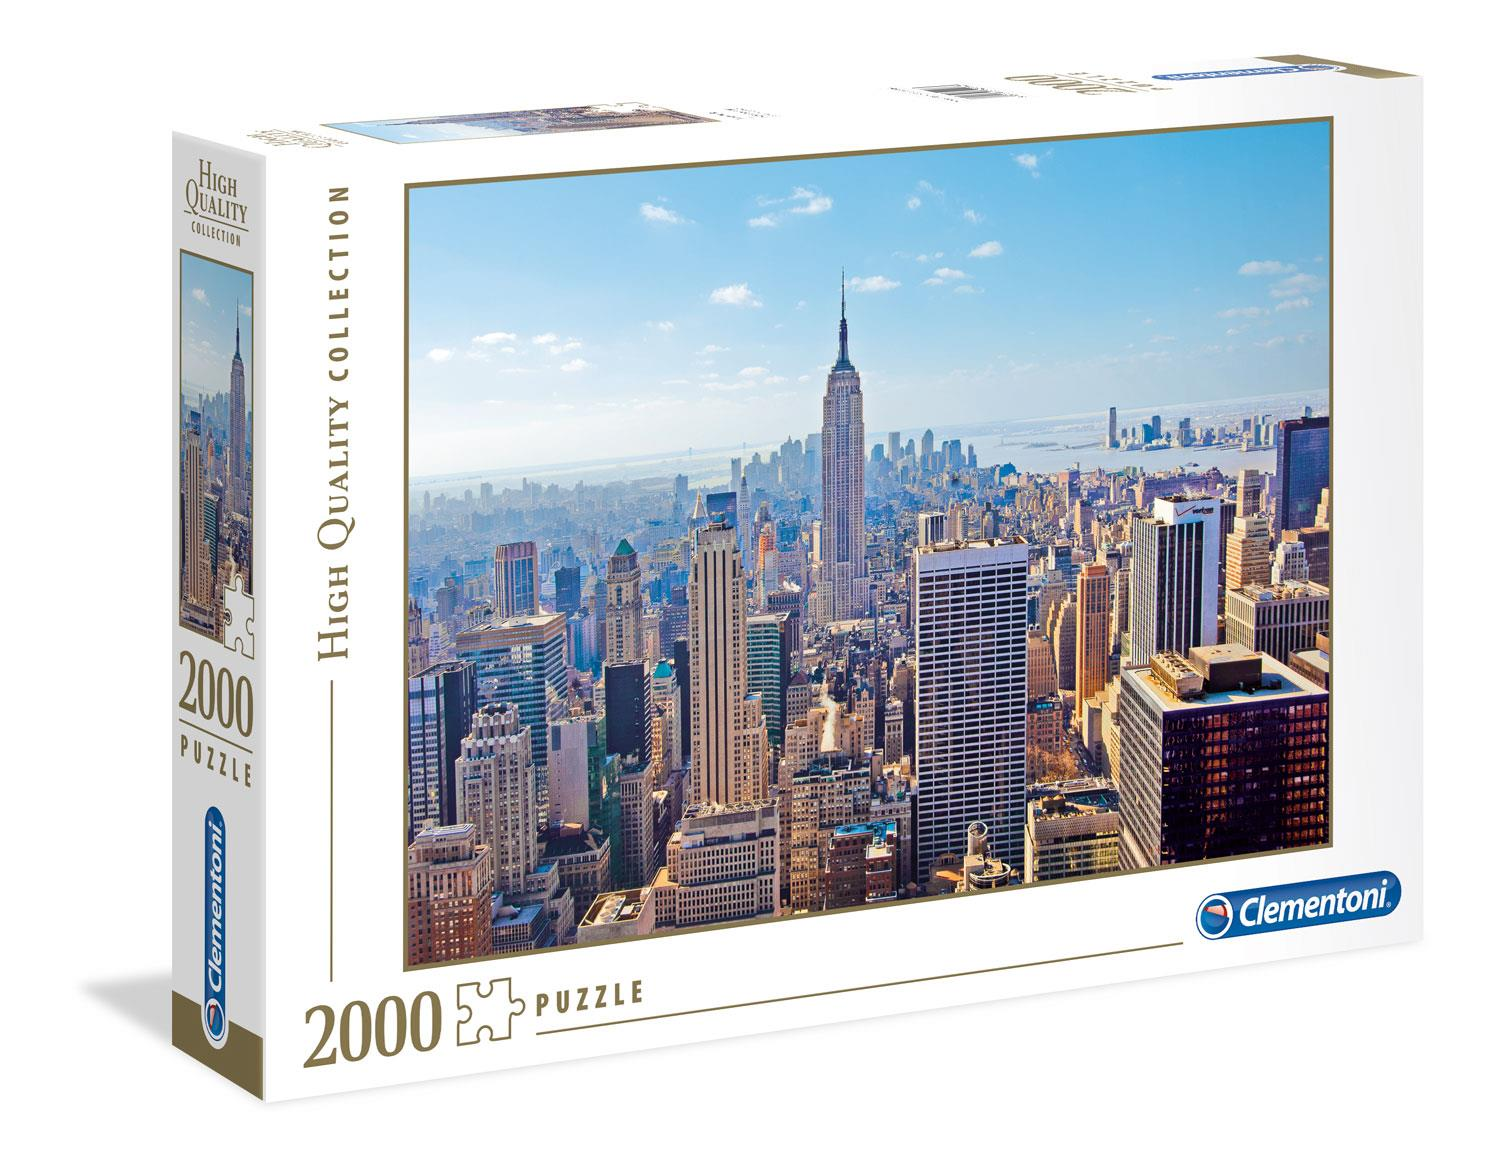 Clementoni New York High Quality Jigsaw Puzzle (2000 Pieces)